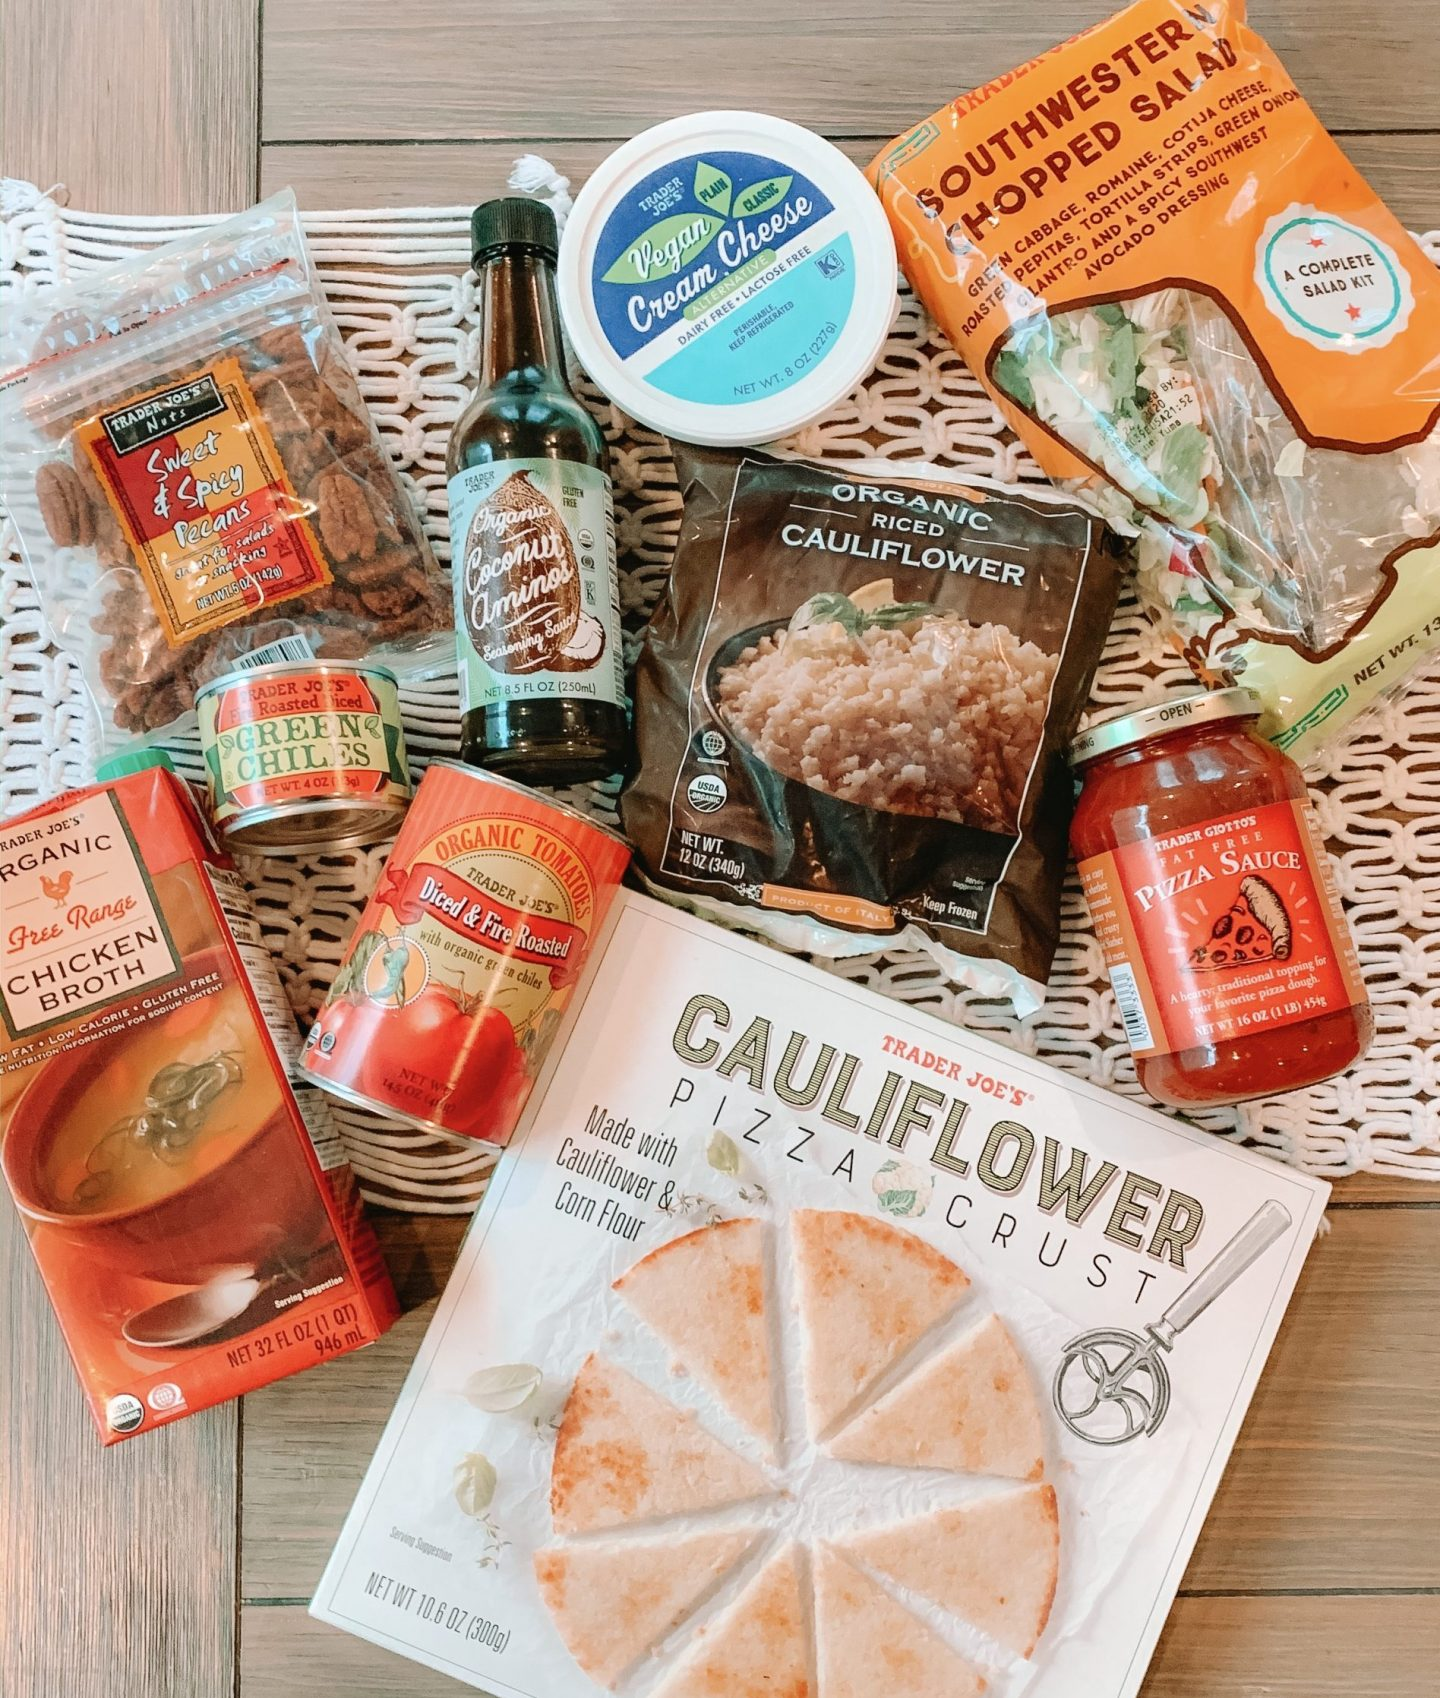 Trader Joe's Grocery List (+ 7 meal ideas)